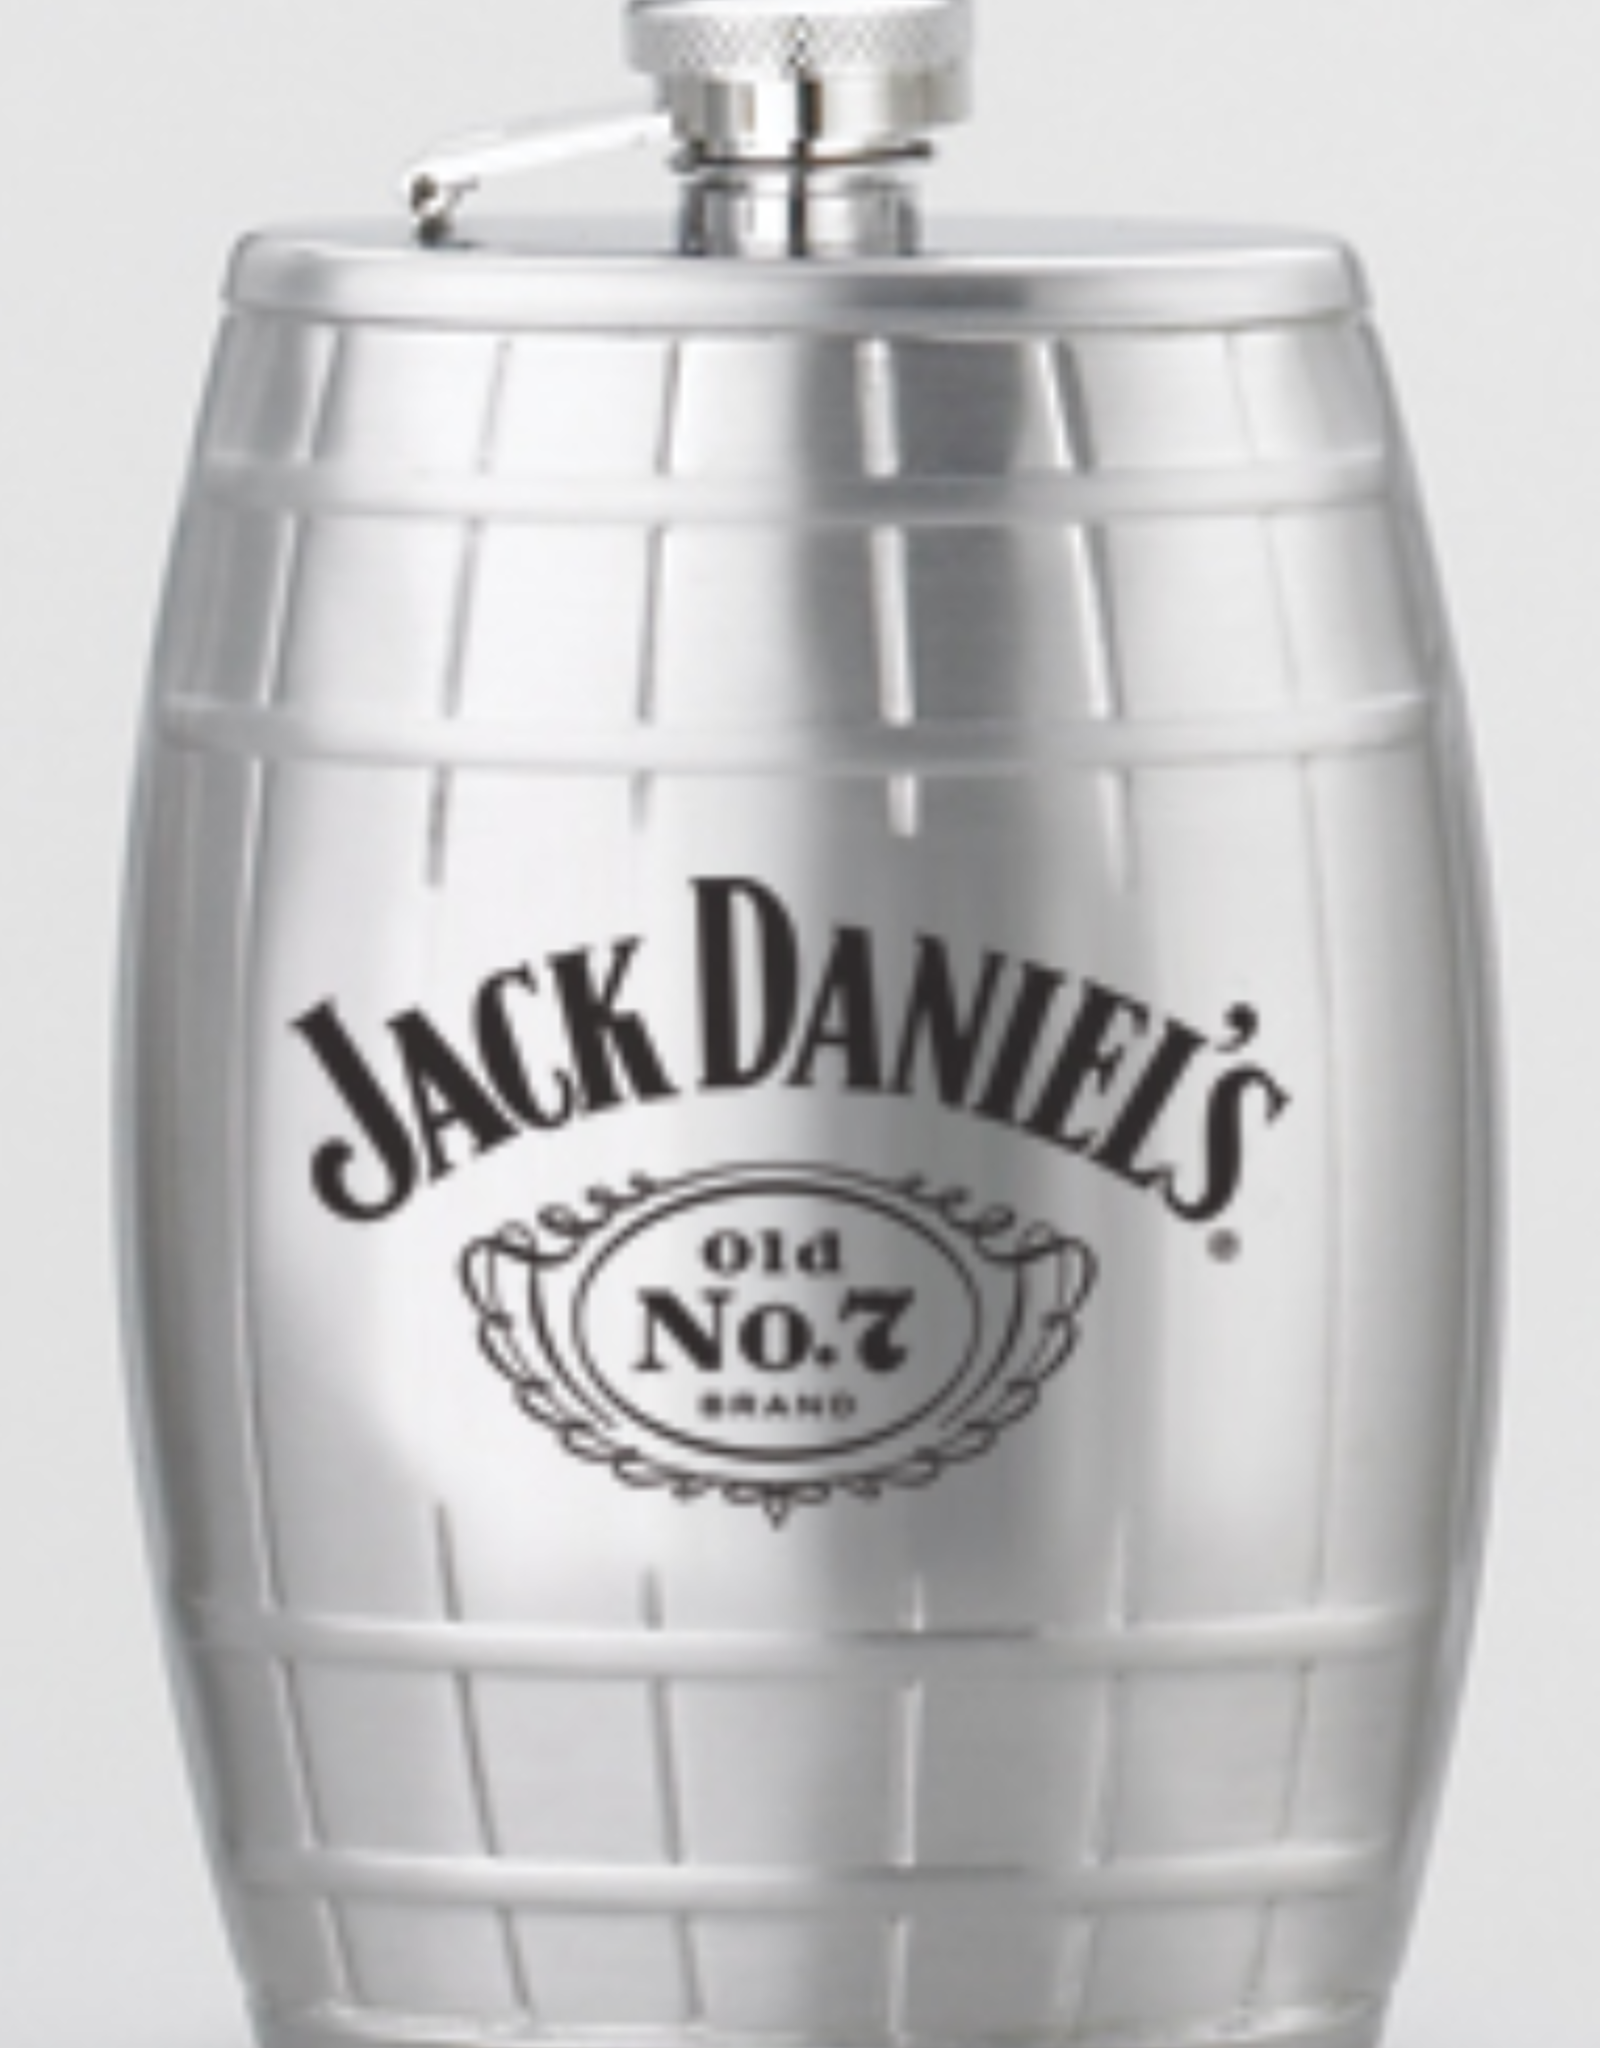 6oz JACK DANIEL'S Barrel Flask